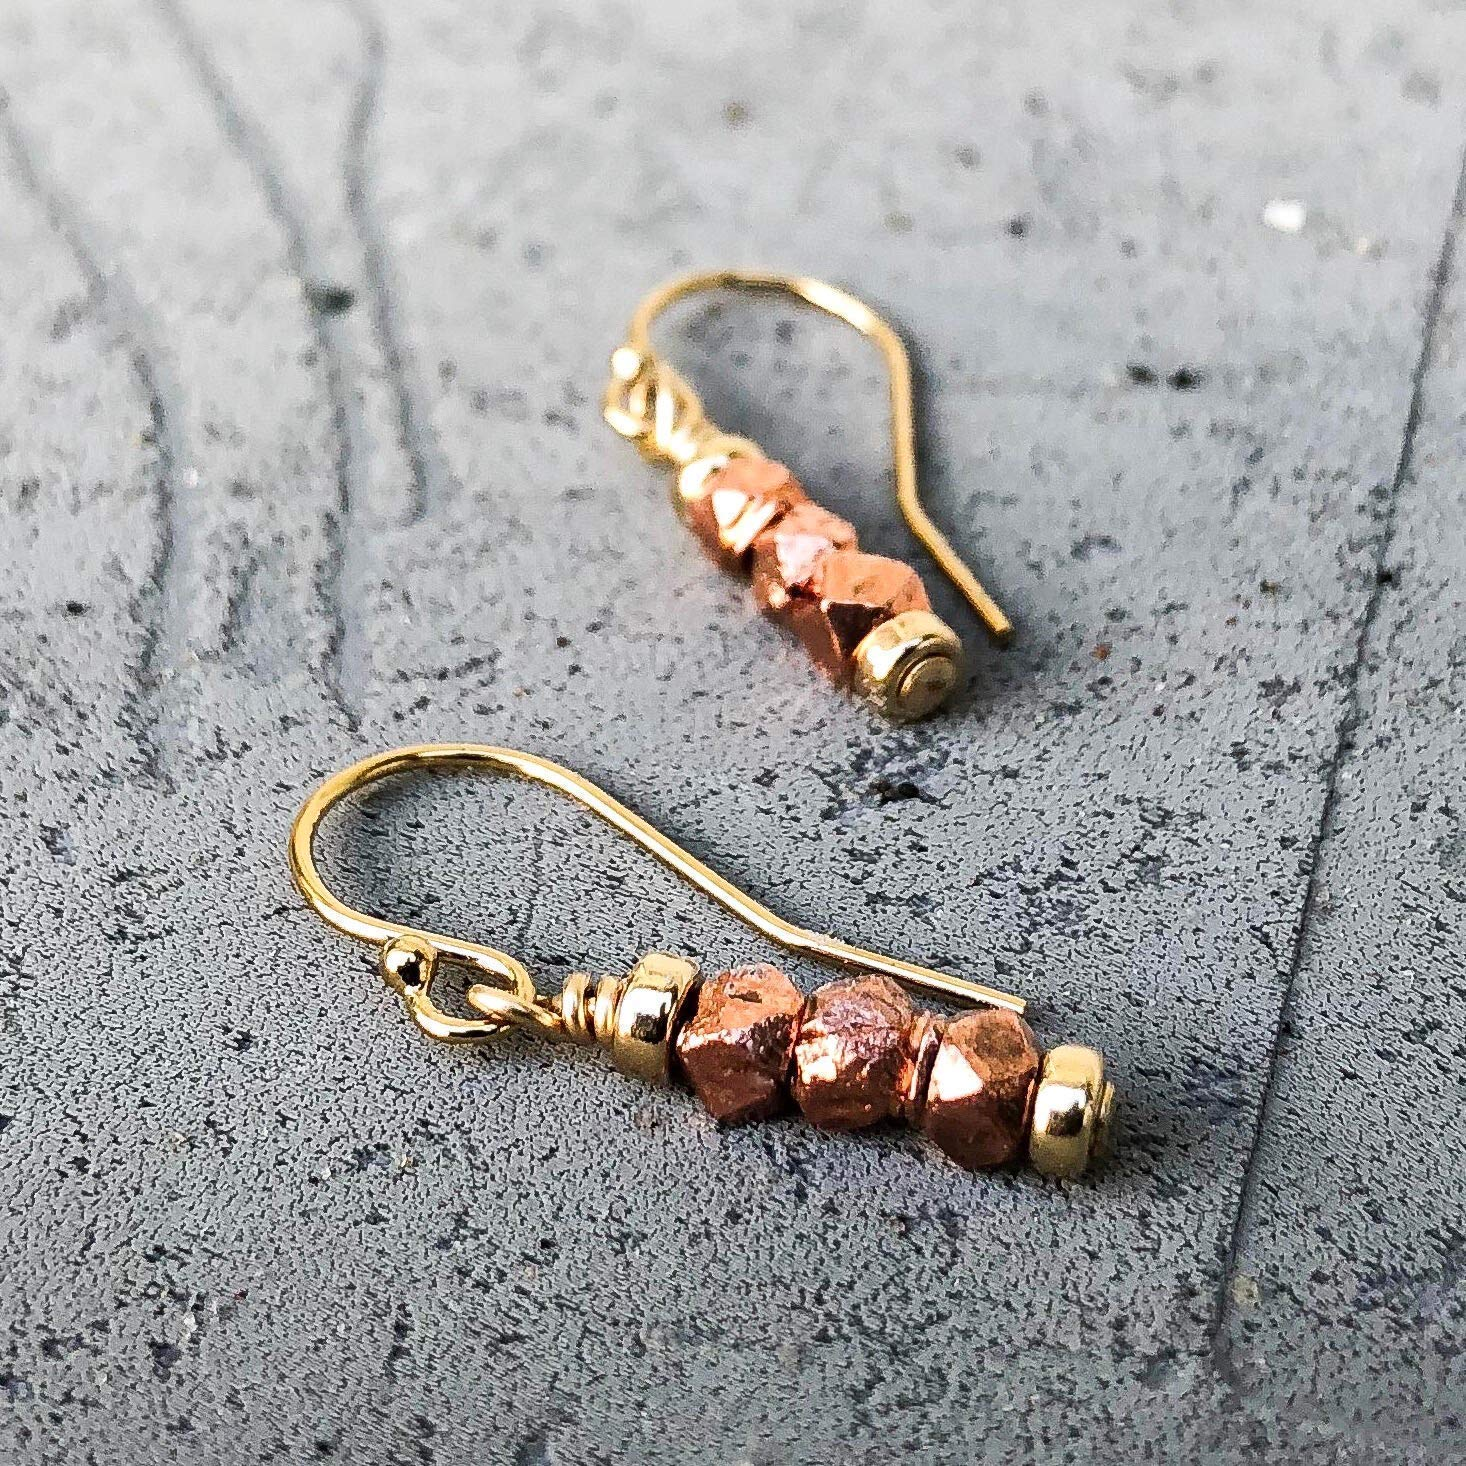 7th Anniversary Gift for Her Copper Jewelry Small Mixed Metal Gold Copper Earrings